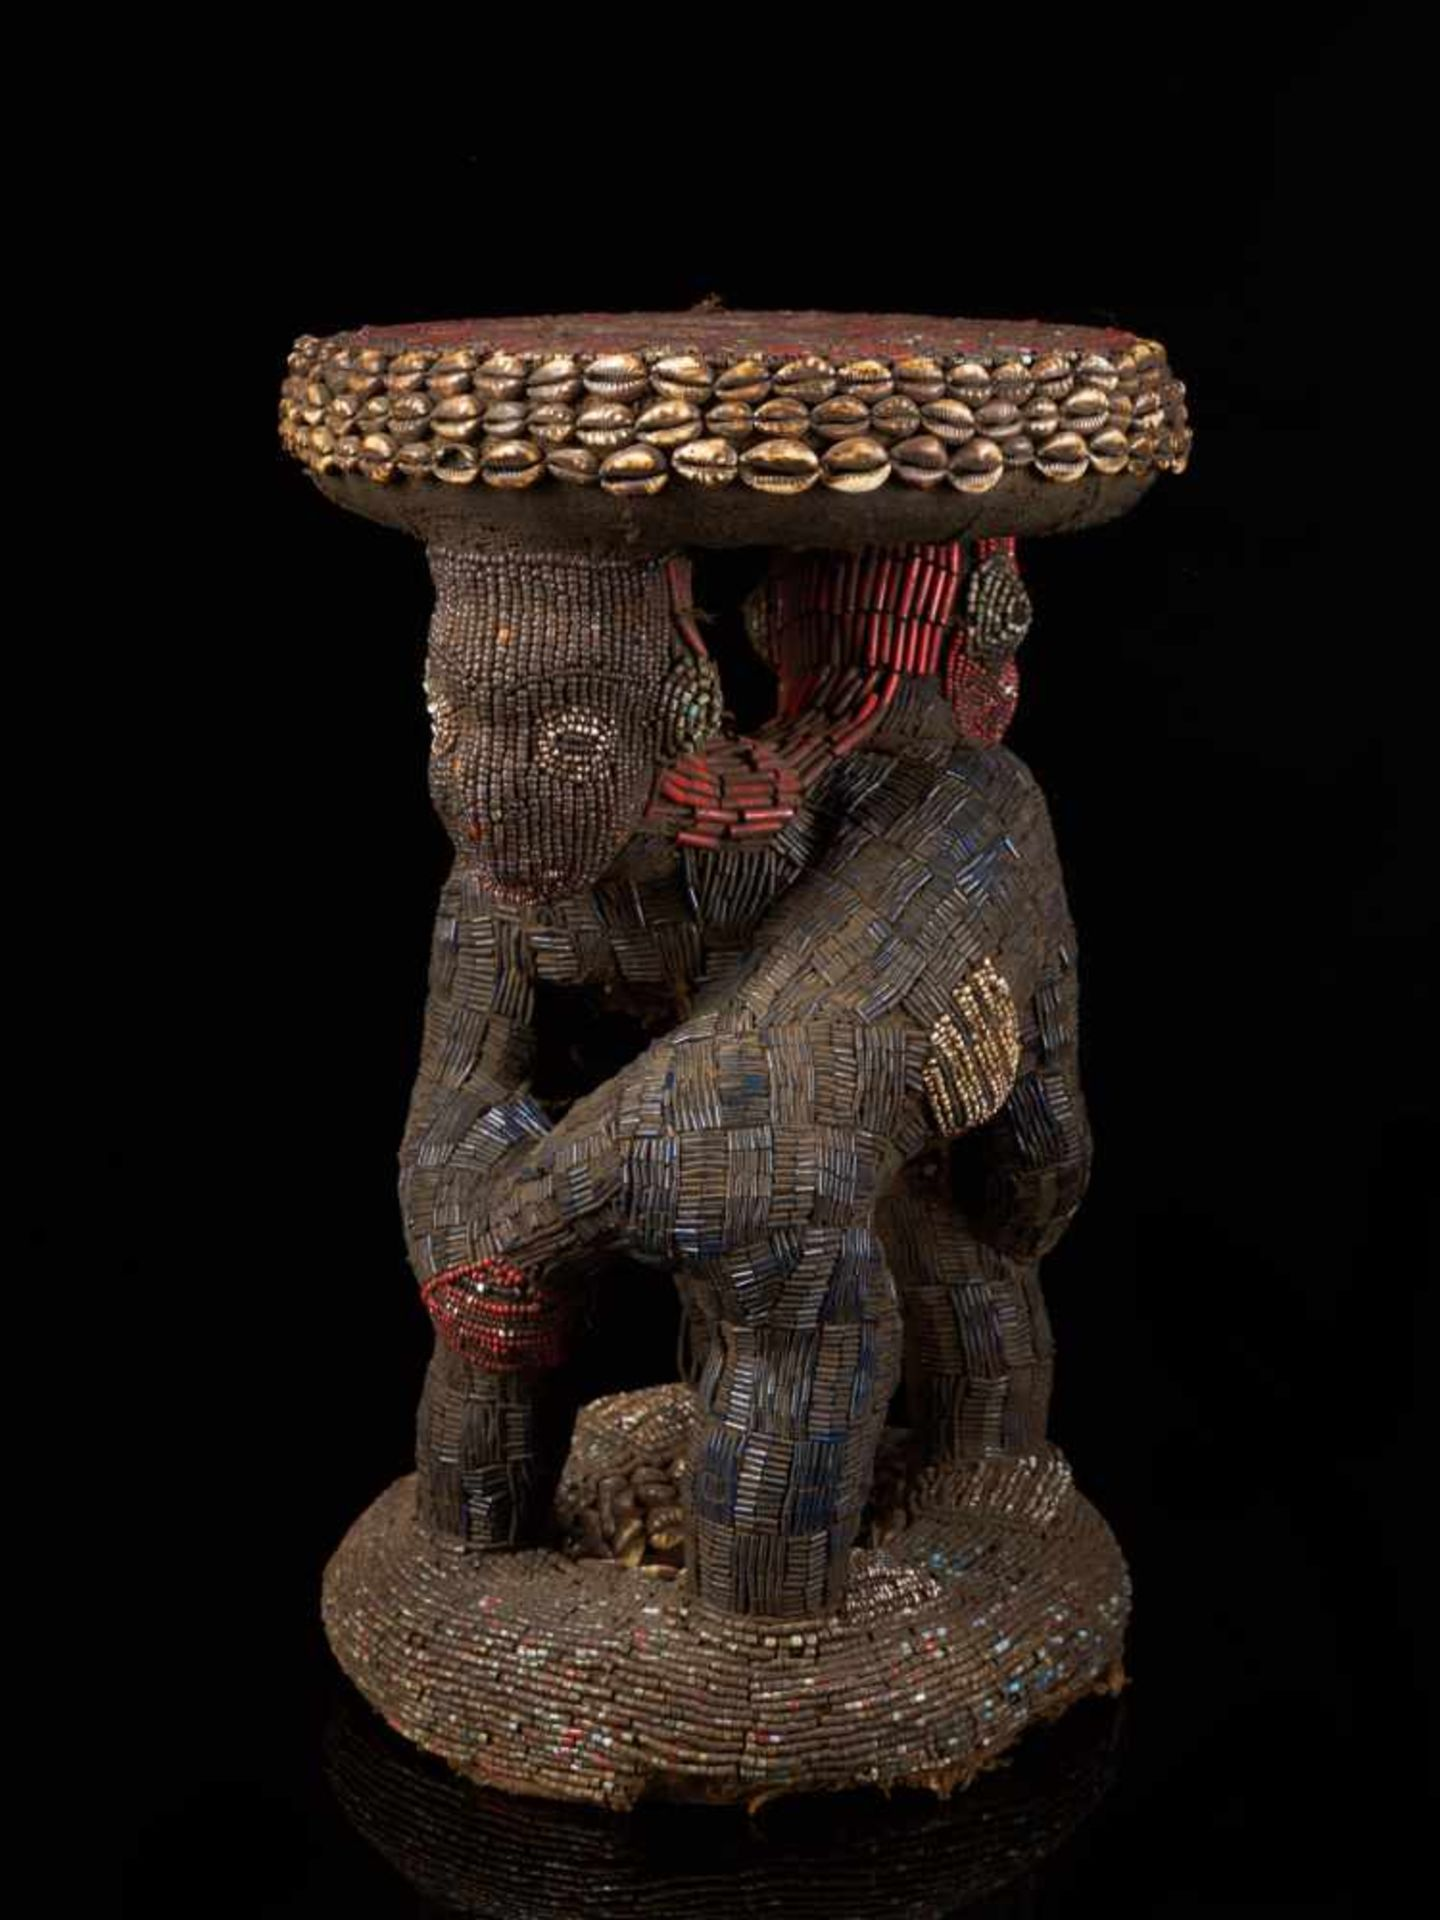 Beaded Royal Stool Supported By Two Figures - Tribal ArtThis exquisite stool has a round base and - Bild 4 aus 5